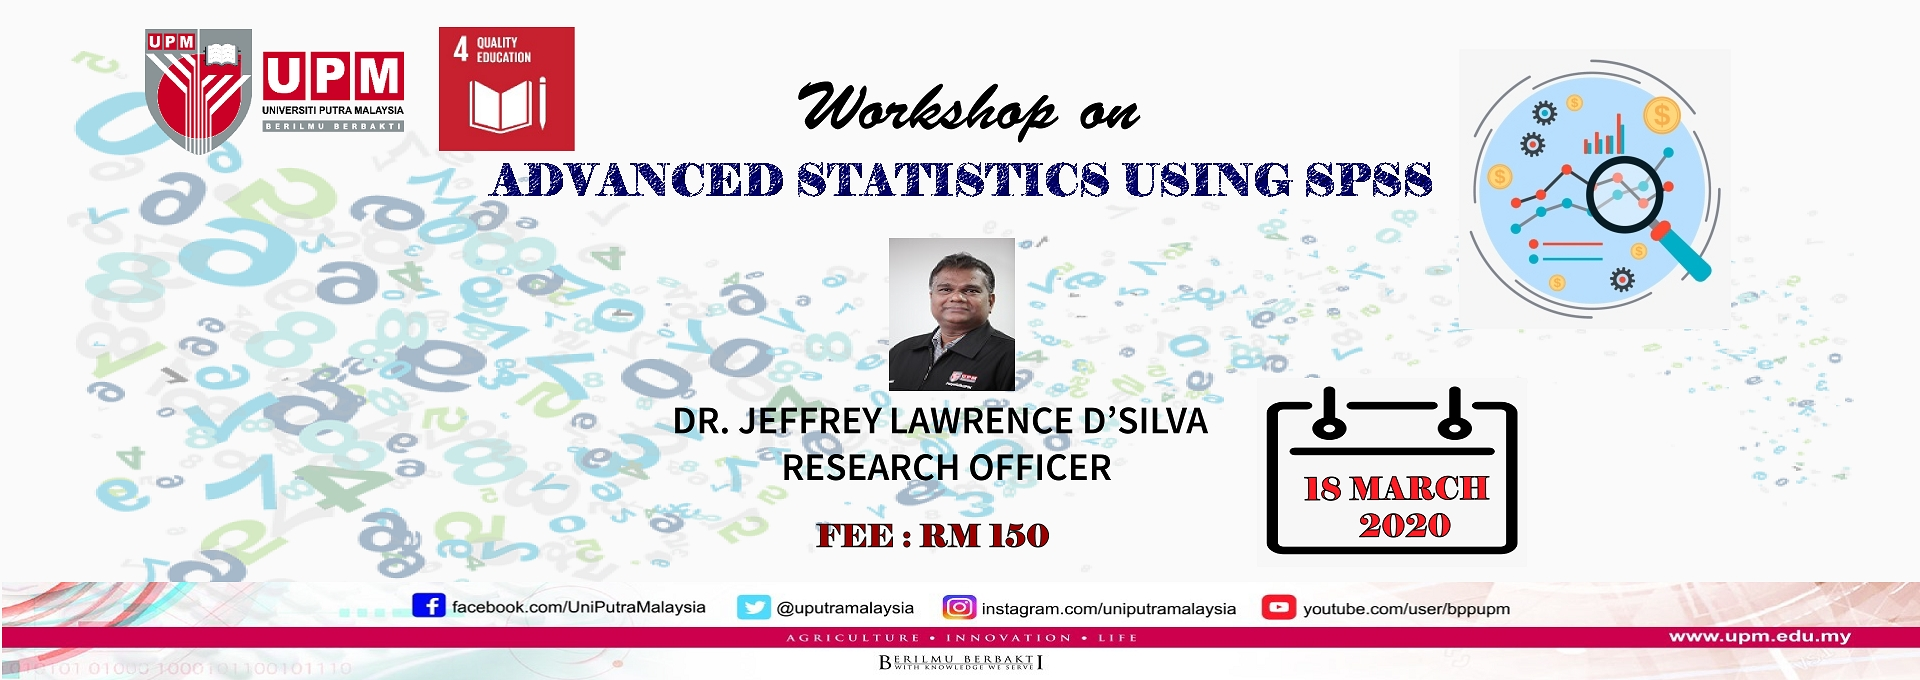 Advanced Statistics Using SPSS